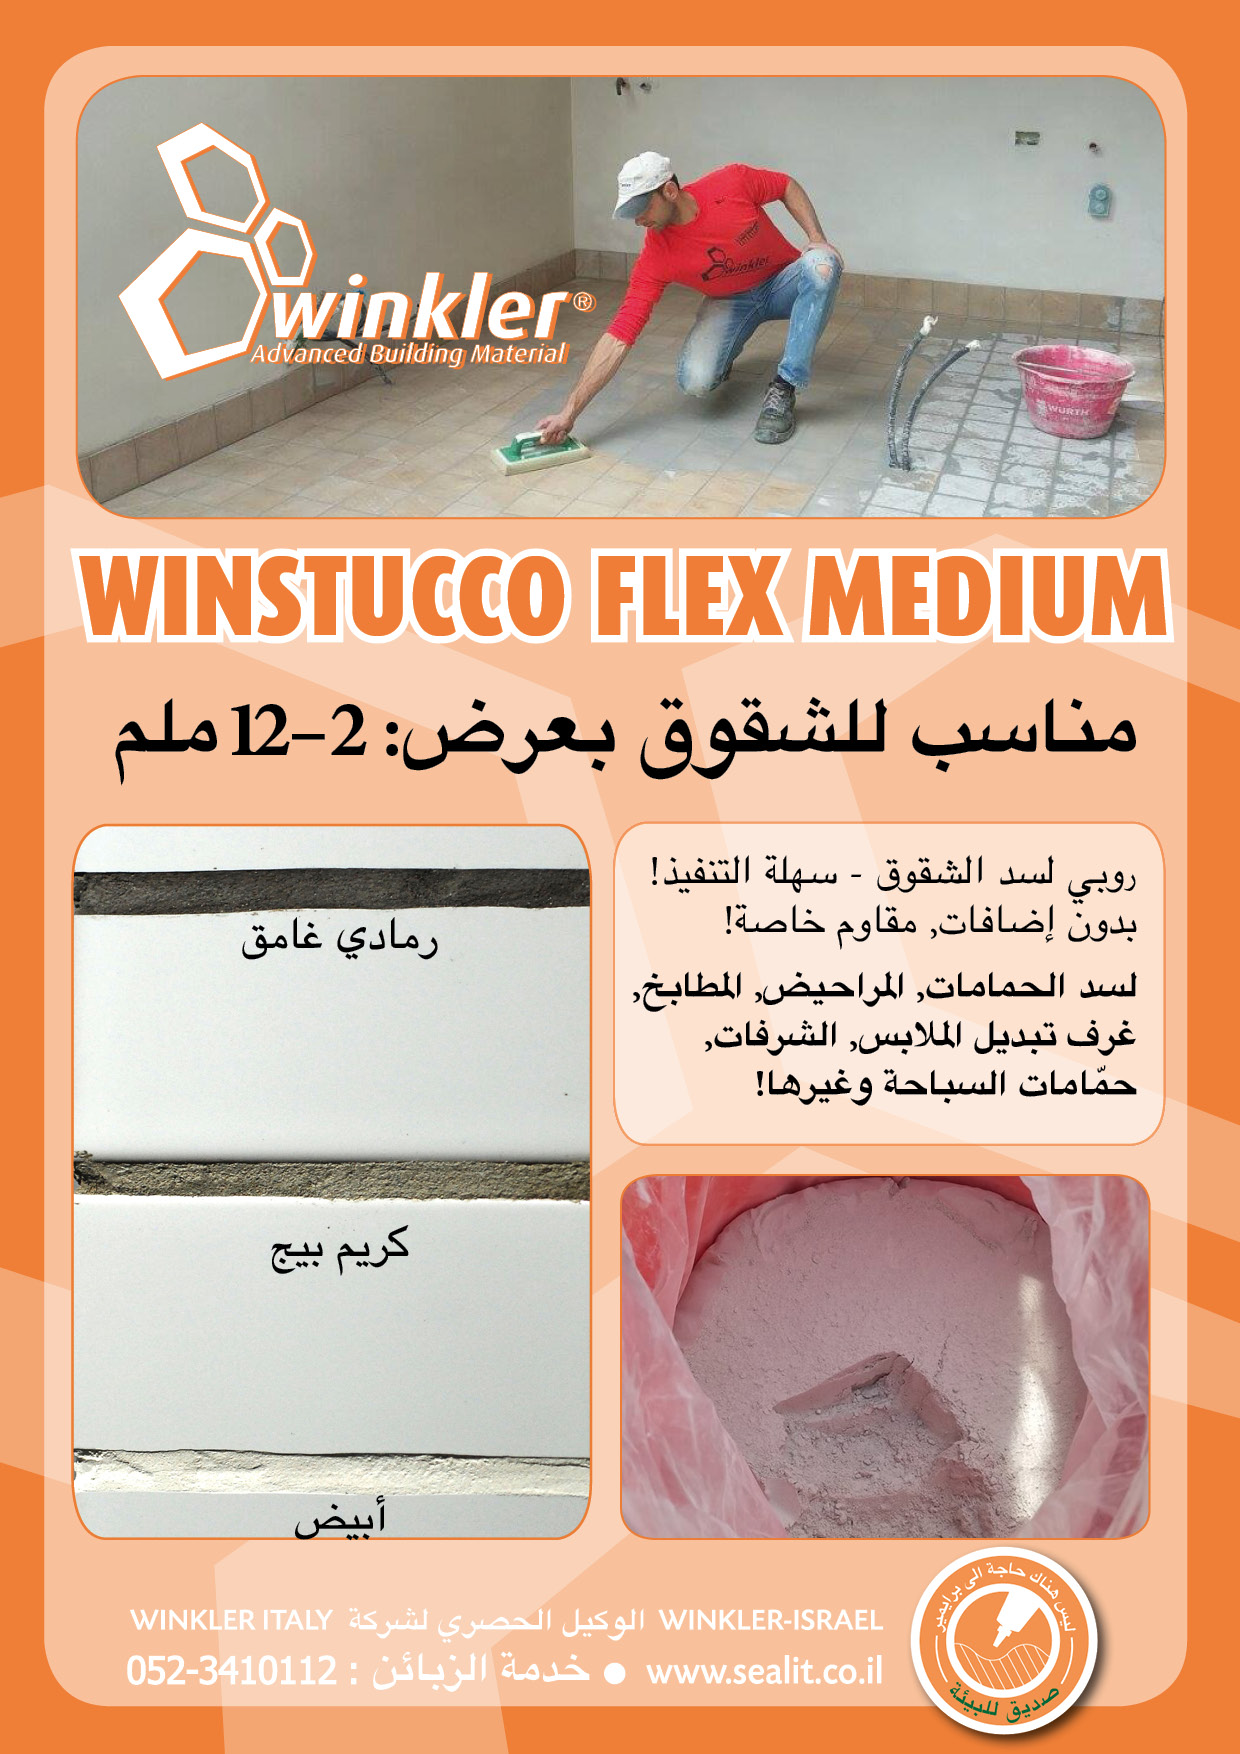 flyer-WINSTUCCO flex medium-arab